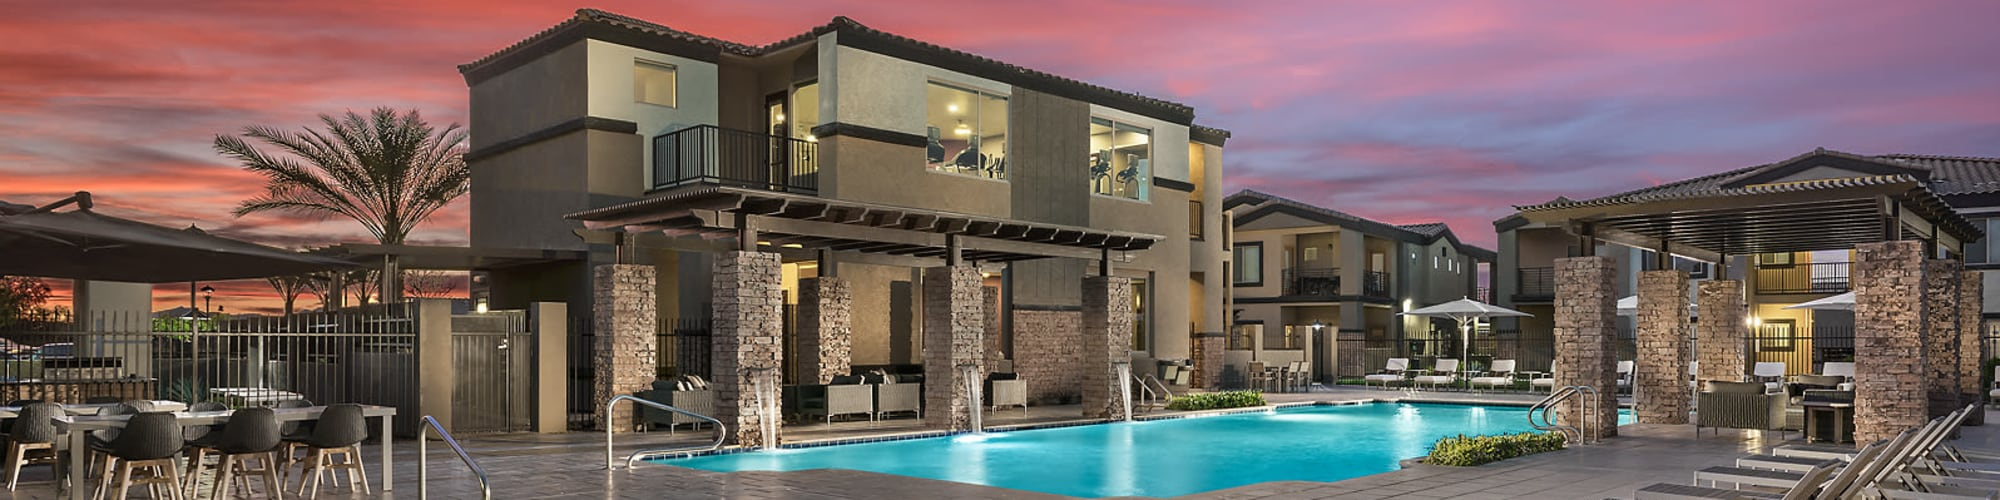 Schedule a tour of The Maxx 159 in Goodyear, Arizona